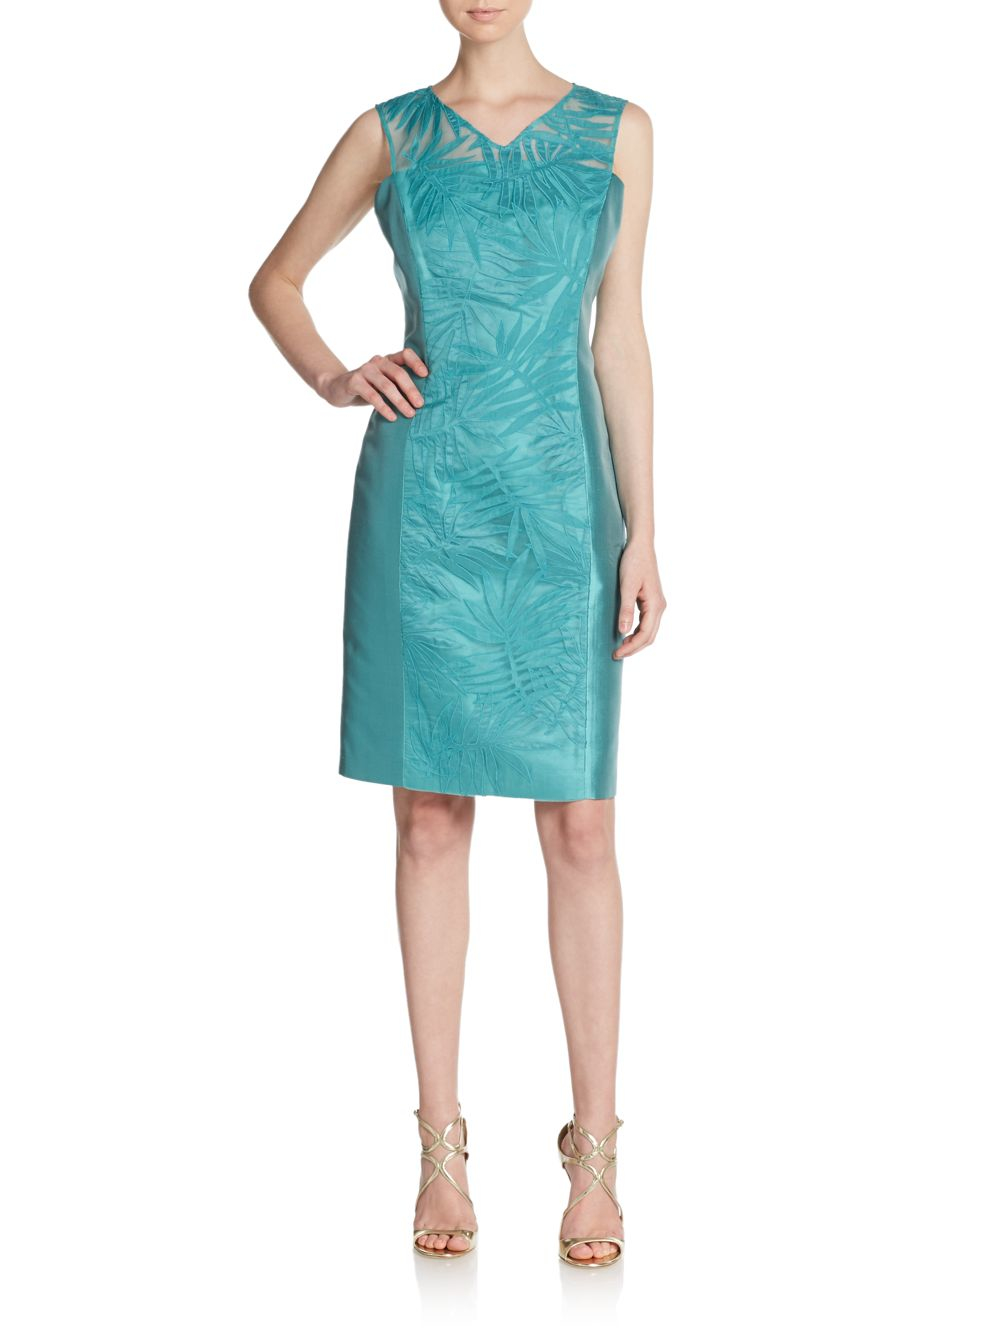 Lyst - Lafayette 148 New York Silk-panel Camille Dress in Blue